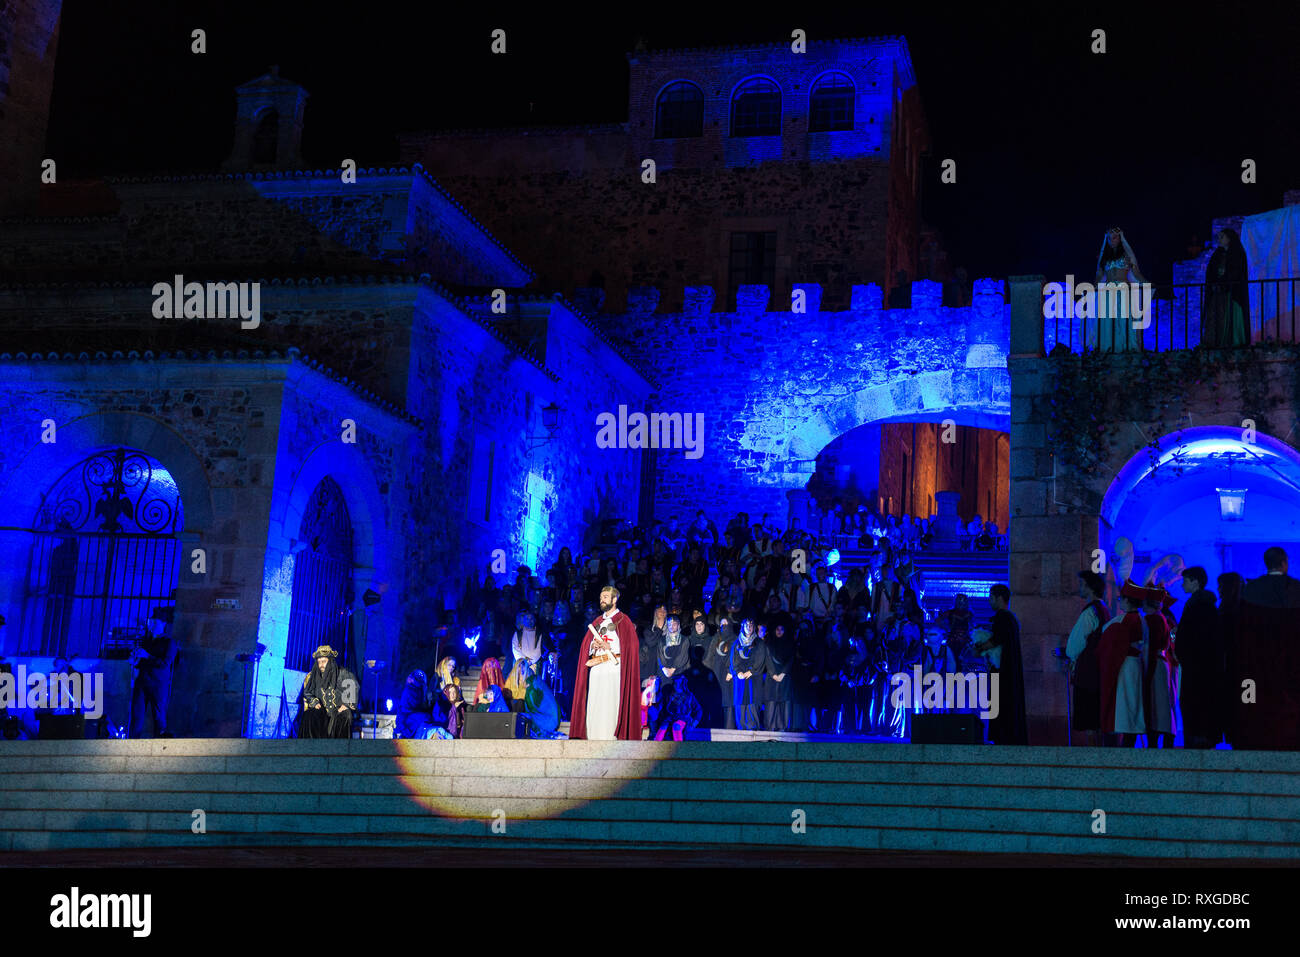 Staging in the old medieval quarter of caceres on the occasion of the feast of Saint George. - Stock Image